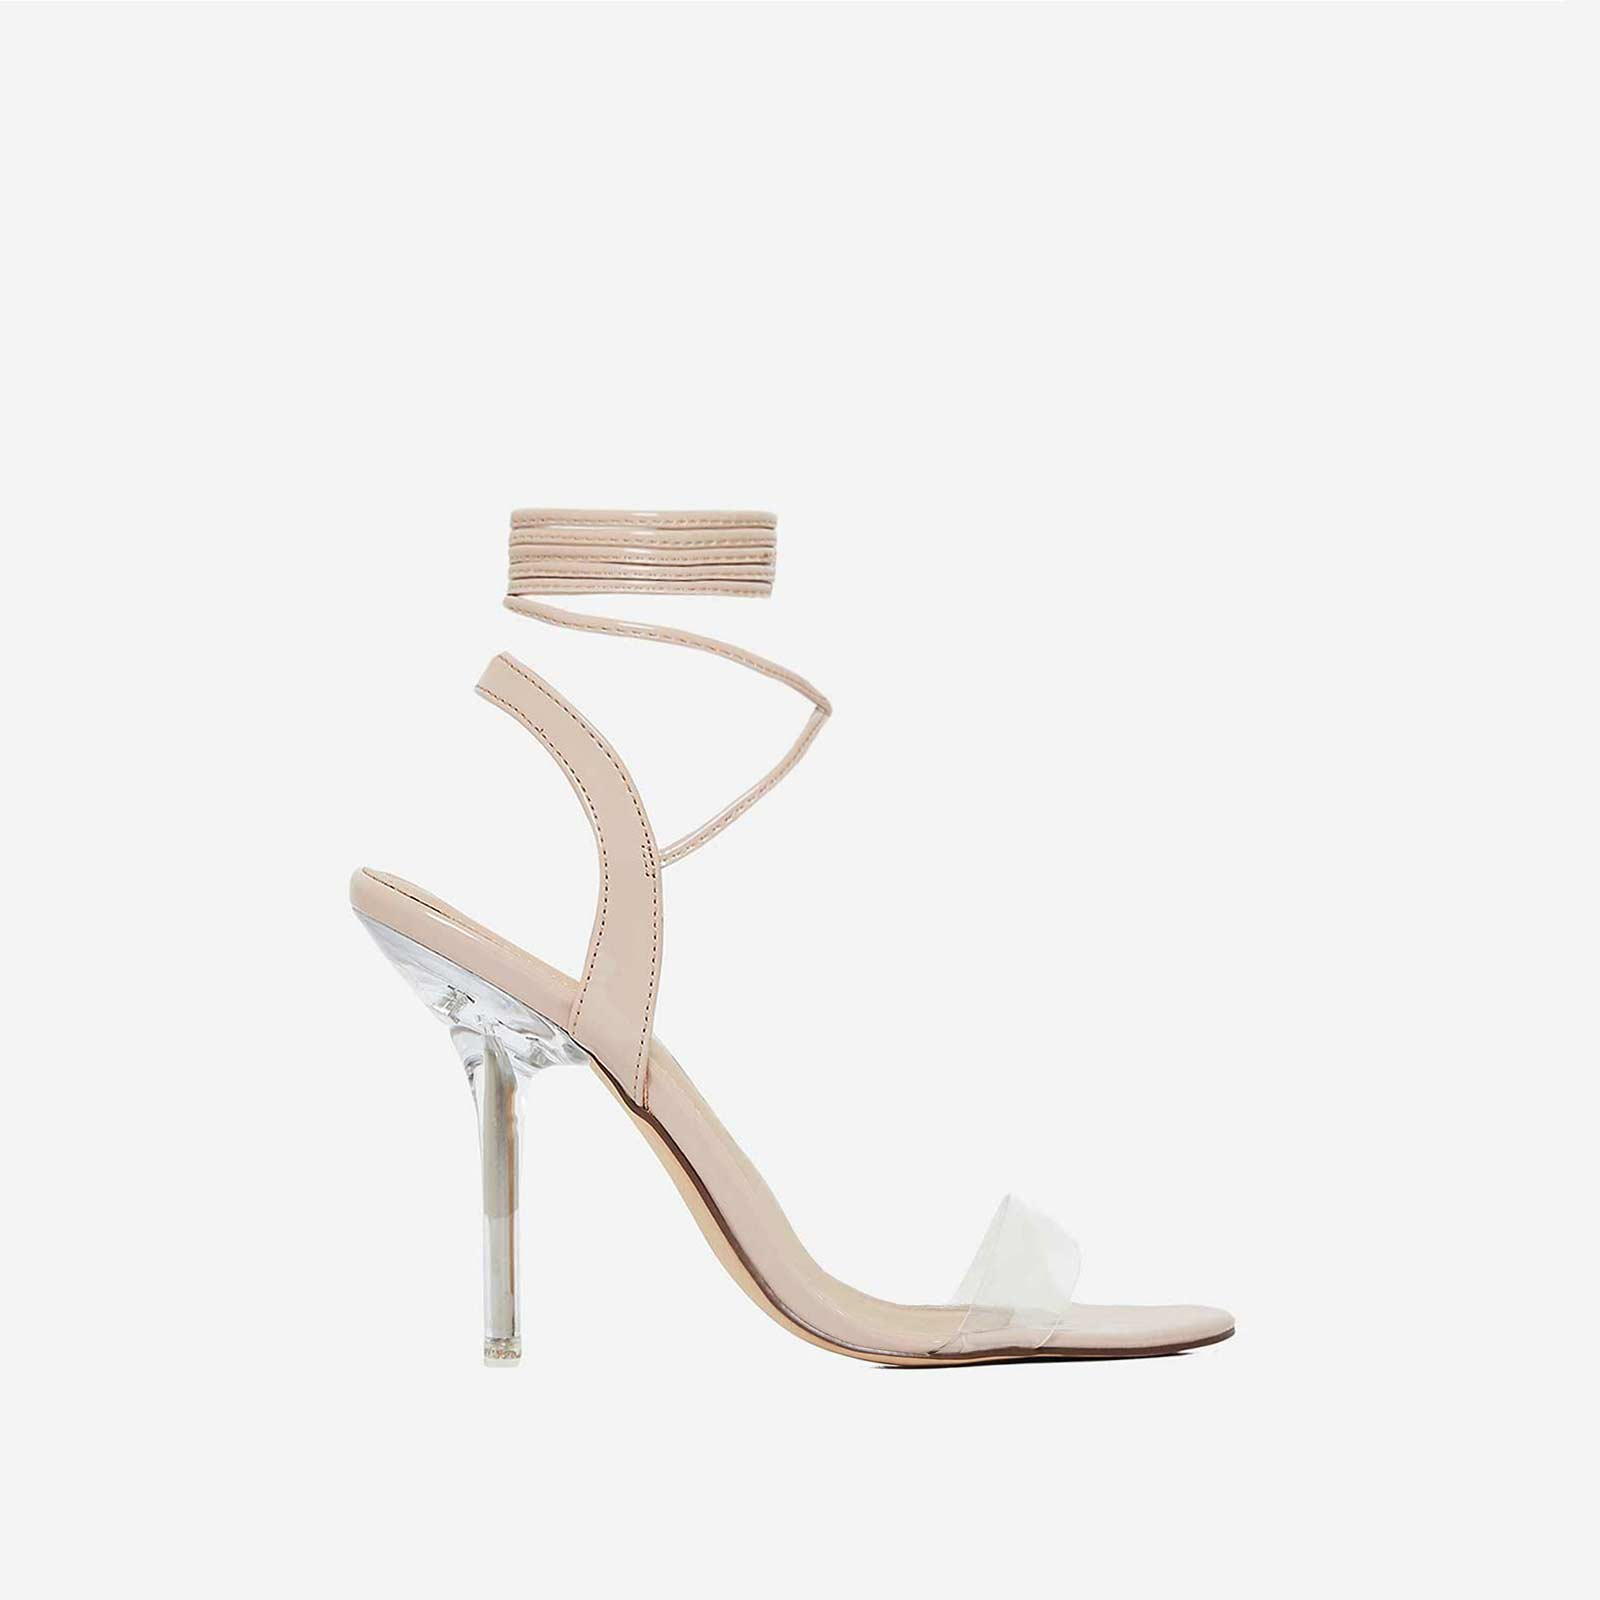 Foxy Lace Up Perspex Heel In Nude Patent